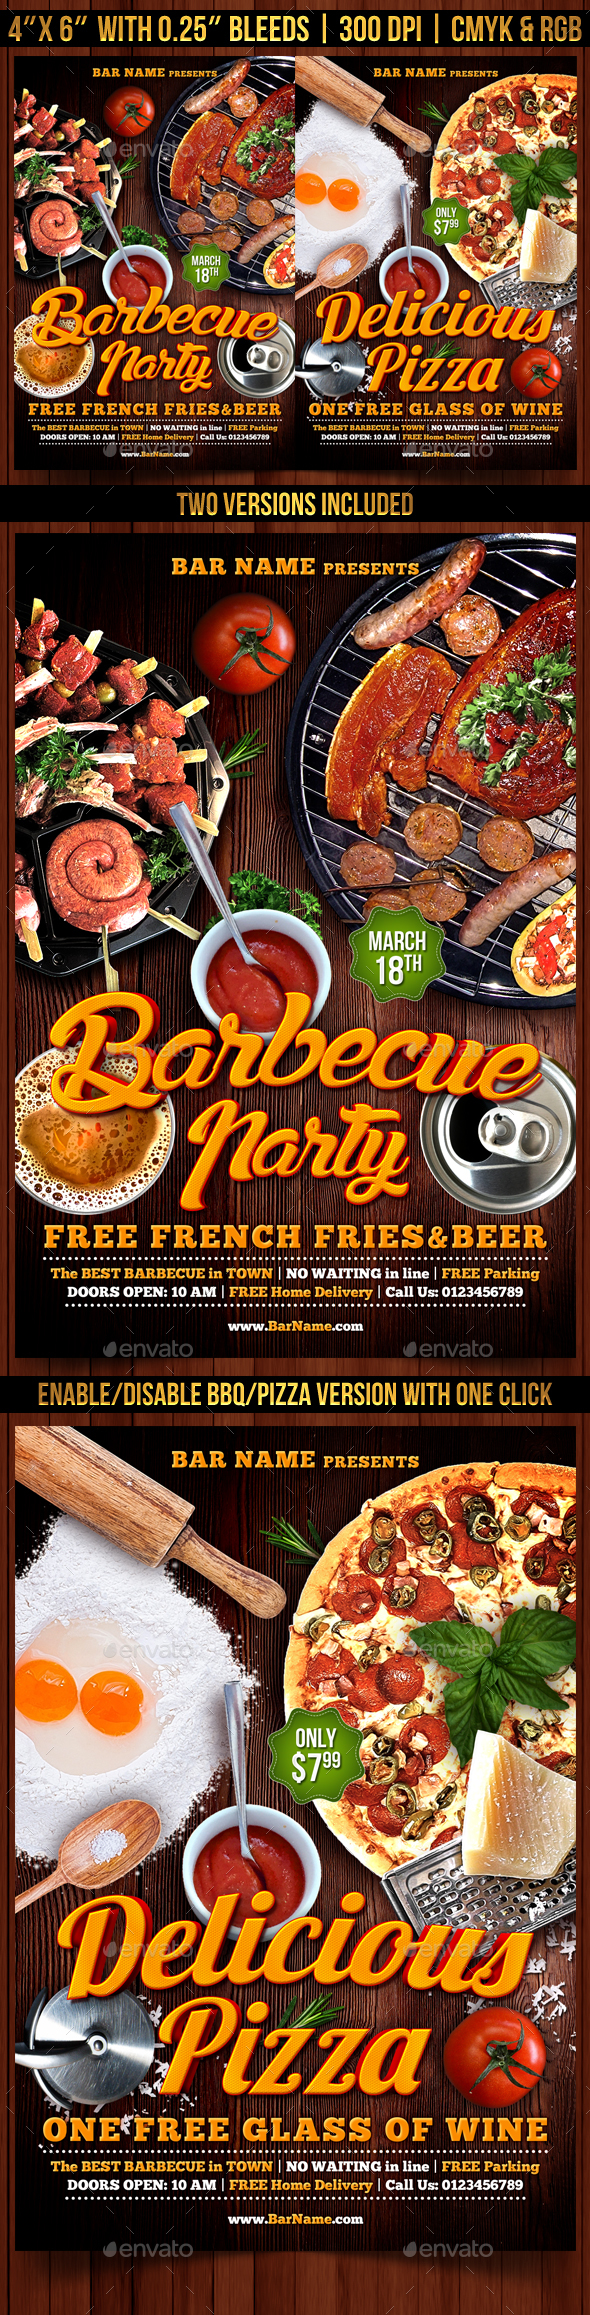 barbecue and pizza flyer template restaurant flyers